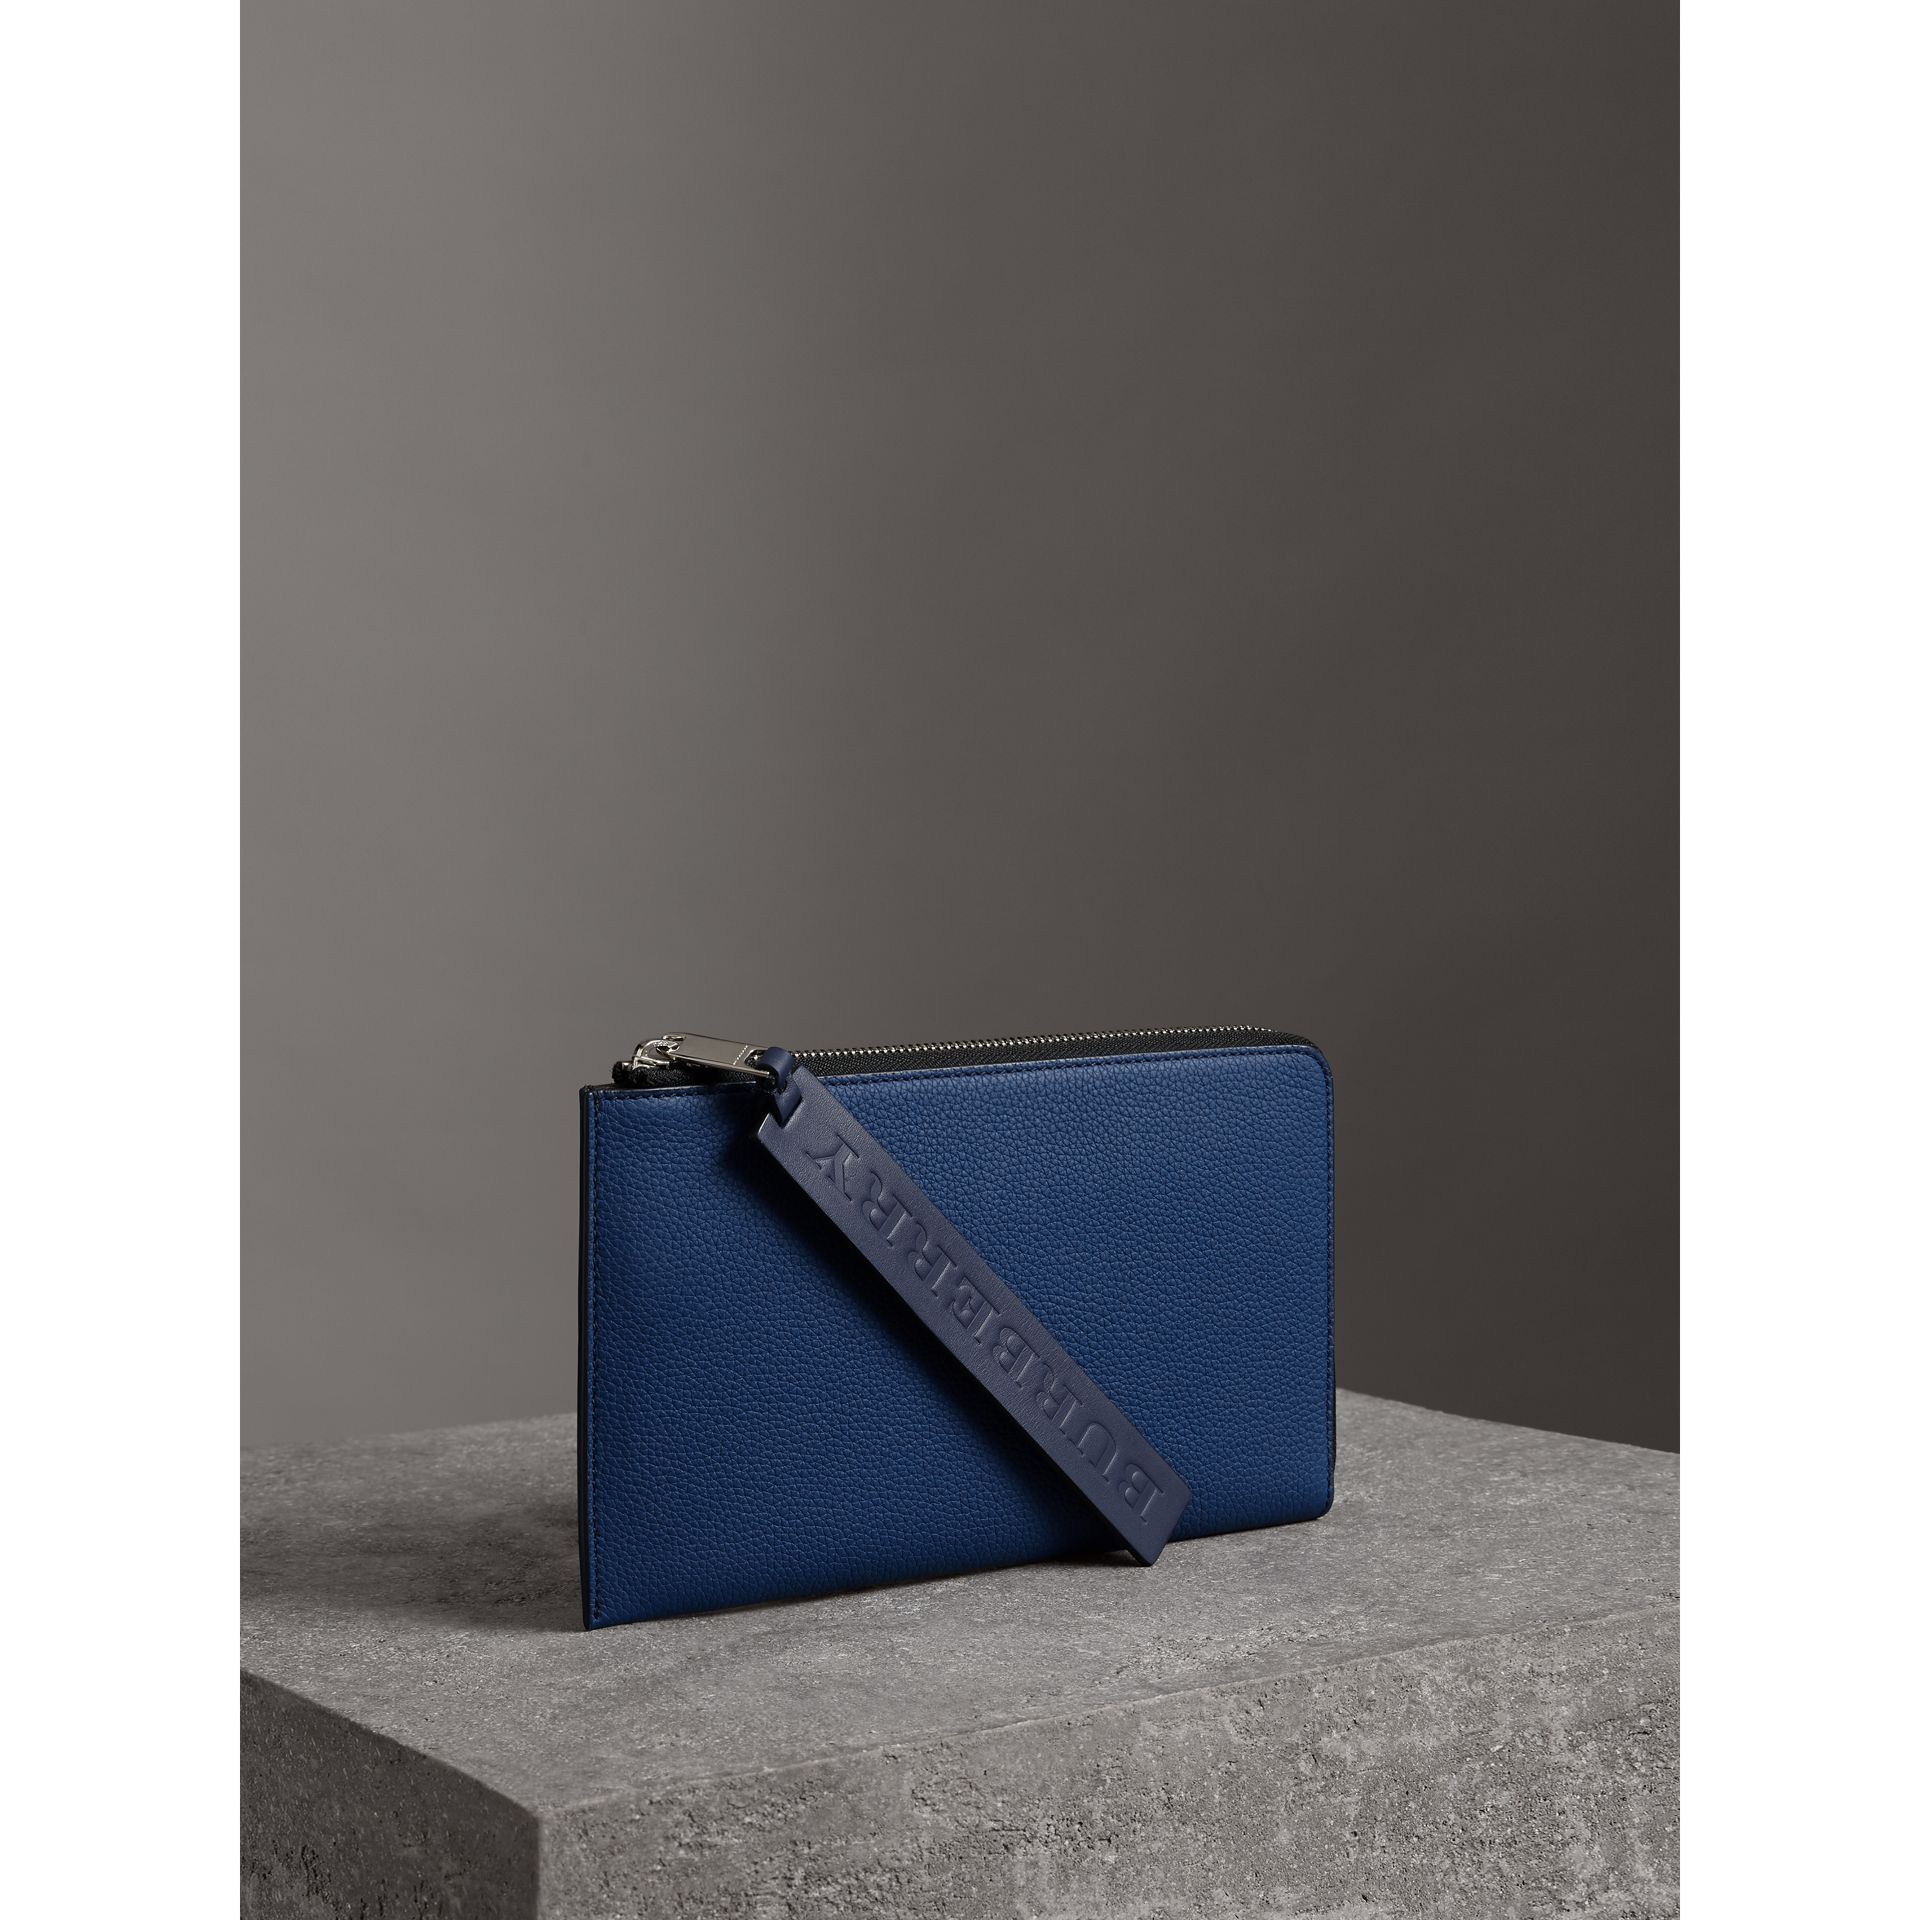 Two-tone Grainy Leather Travel Wallet in Bright Ultramarine - Men | Burberry Hong Kong - gallery image 5